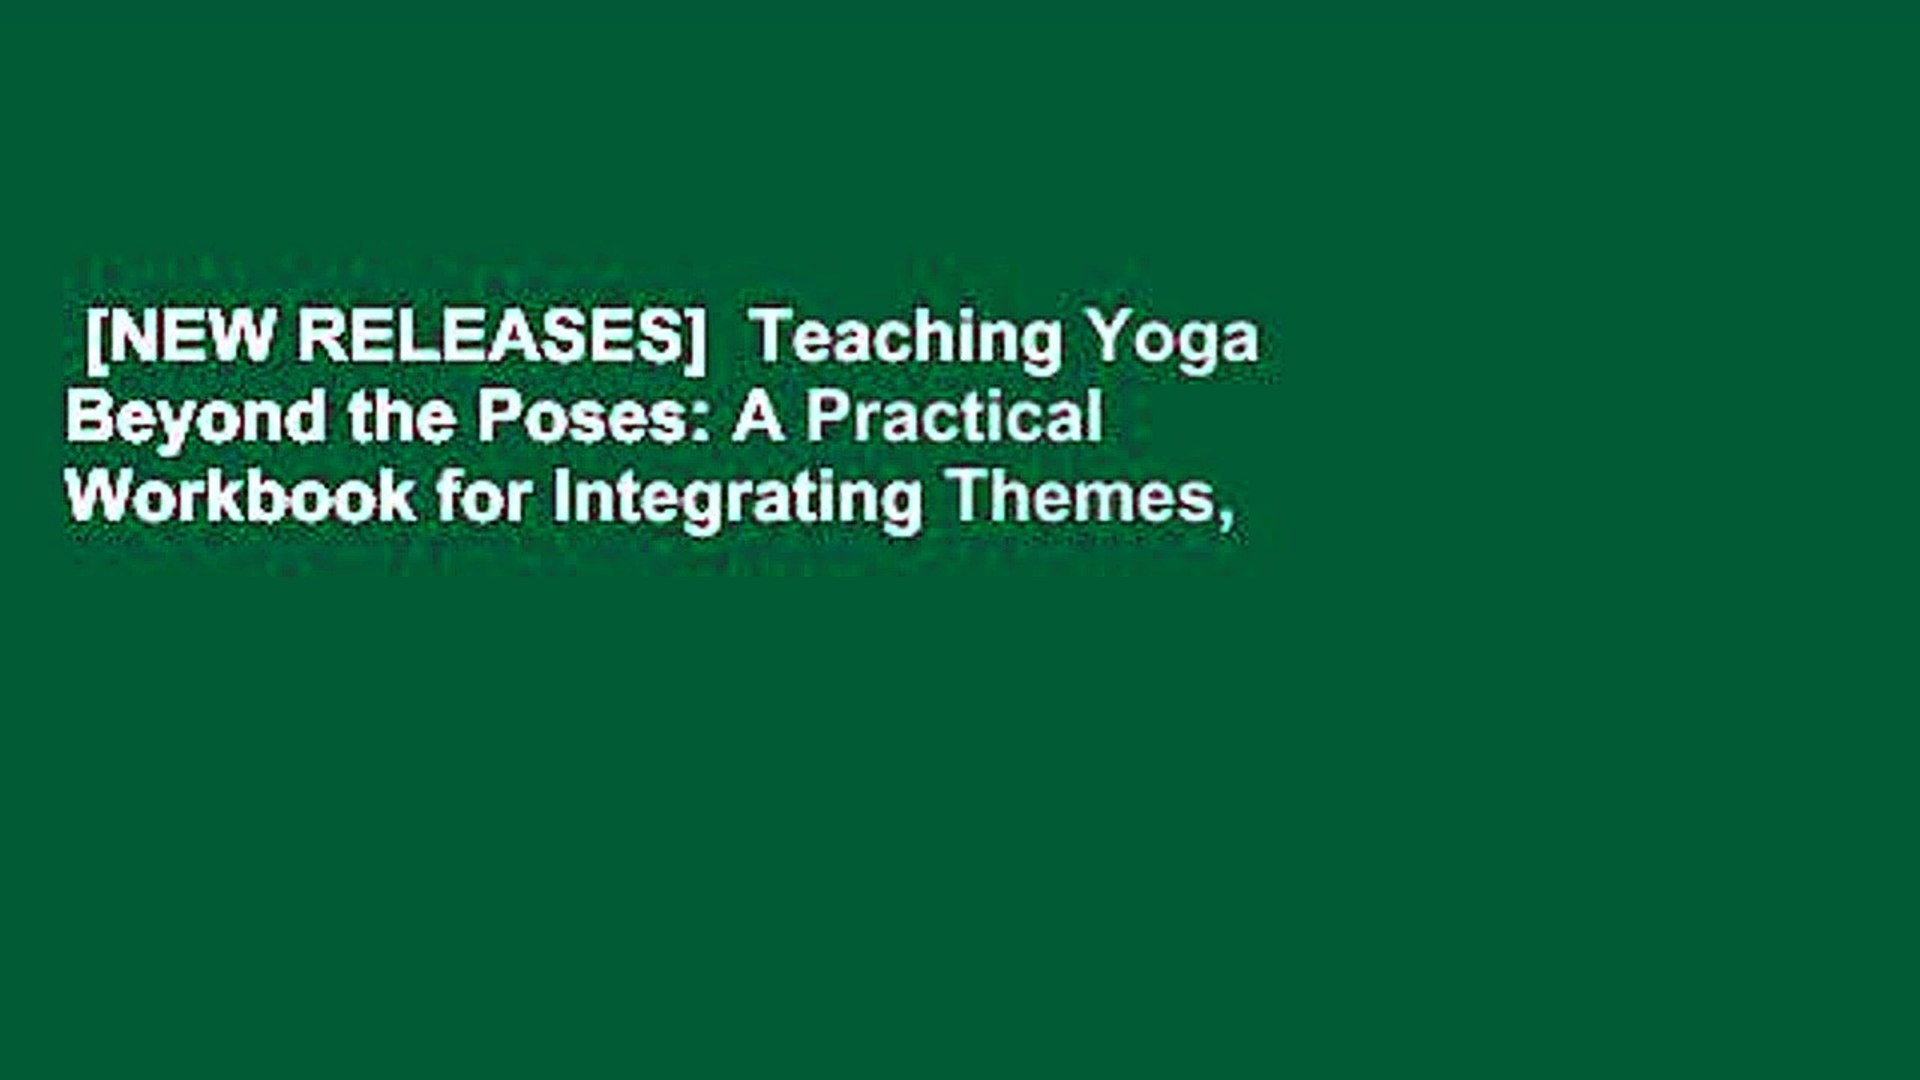 [NEW RELEASES] Teaching Yoga Beyond the Poses: A Practical Workbook for  Integrating Themes,